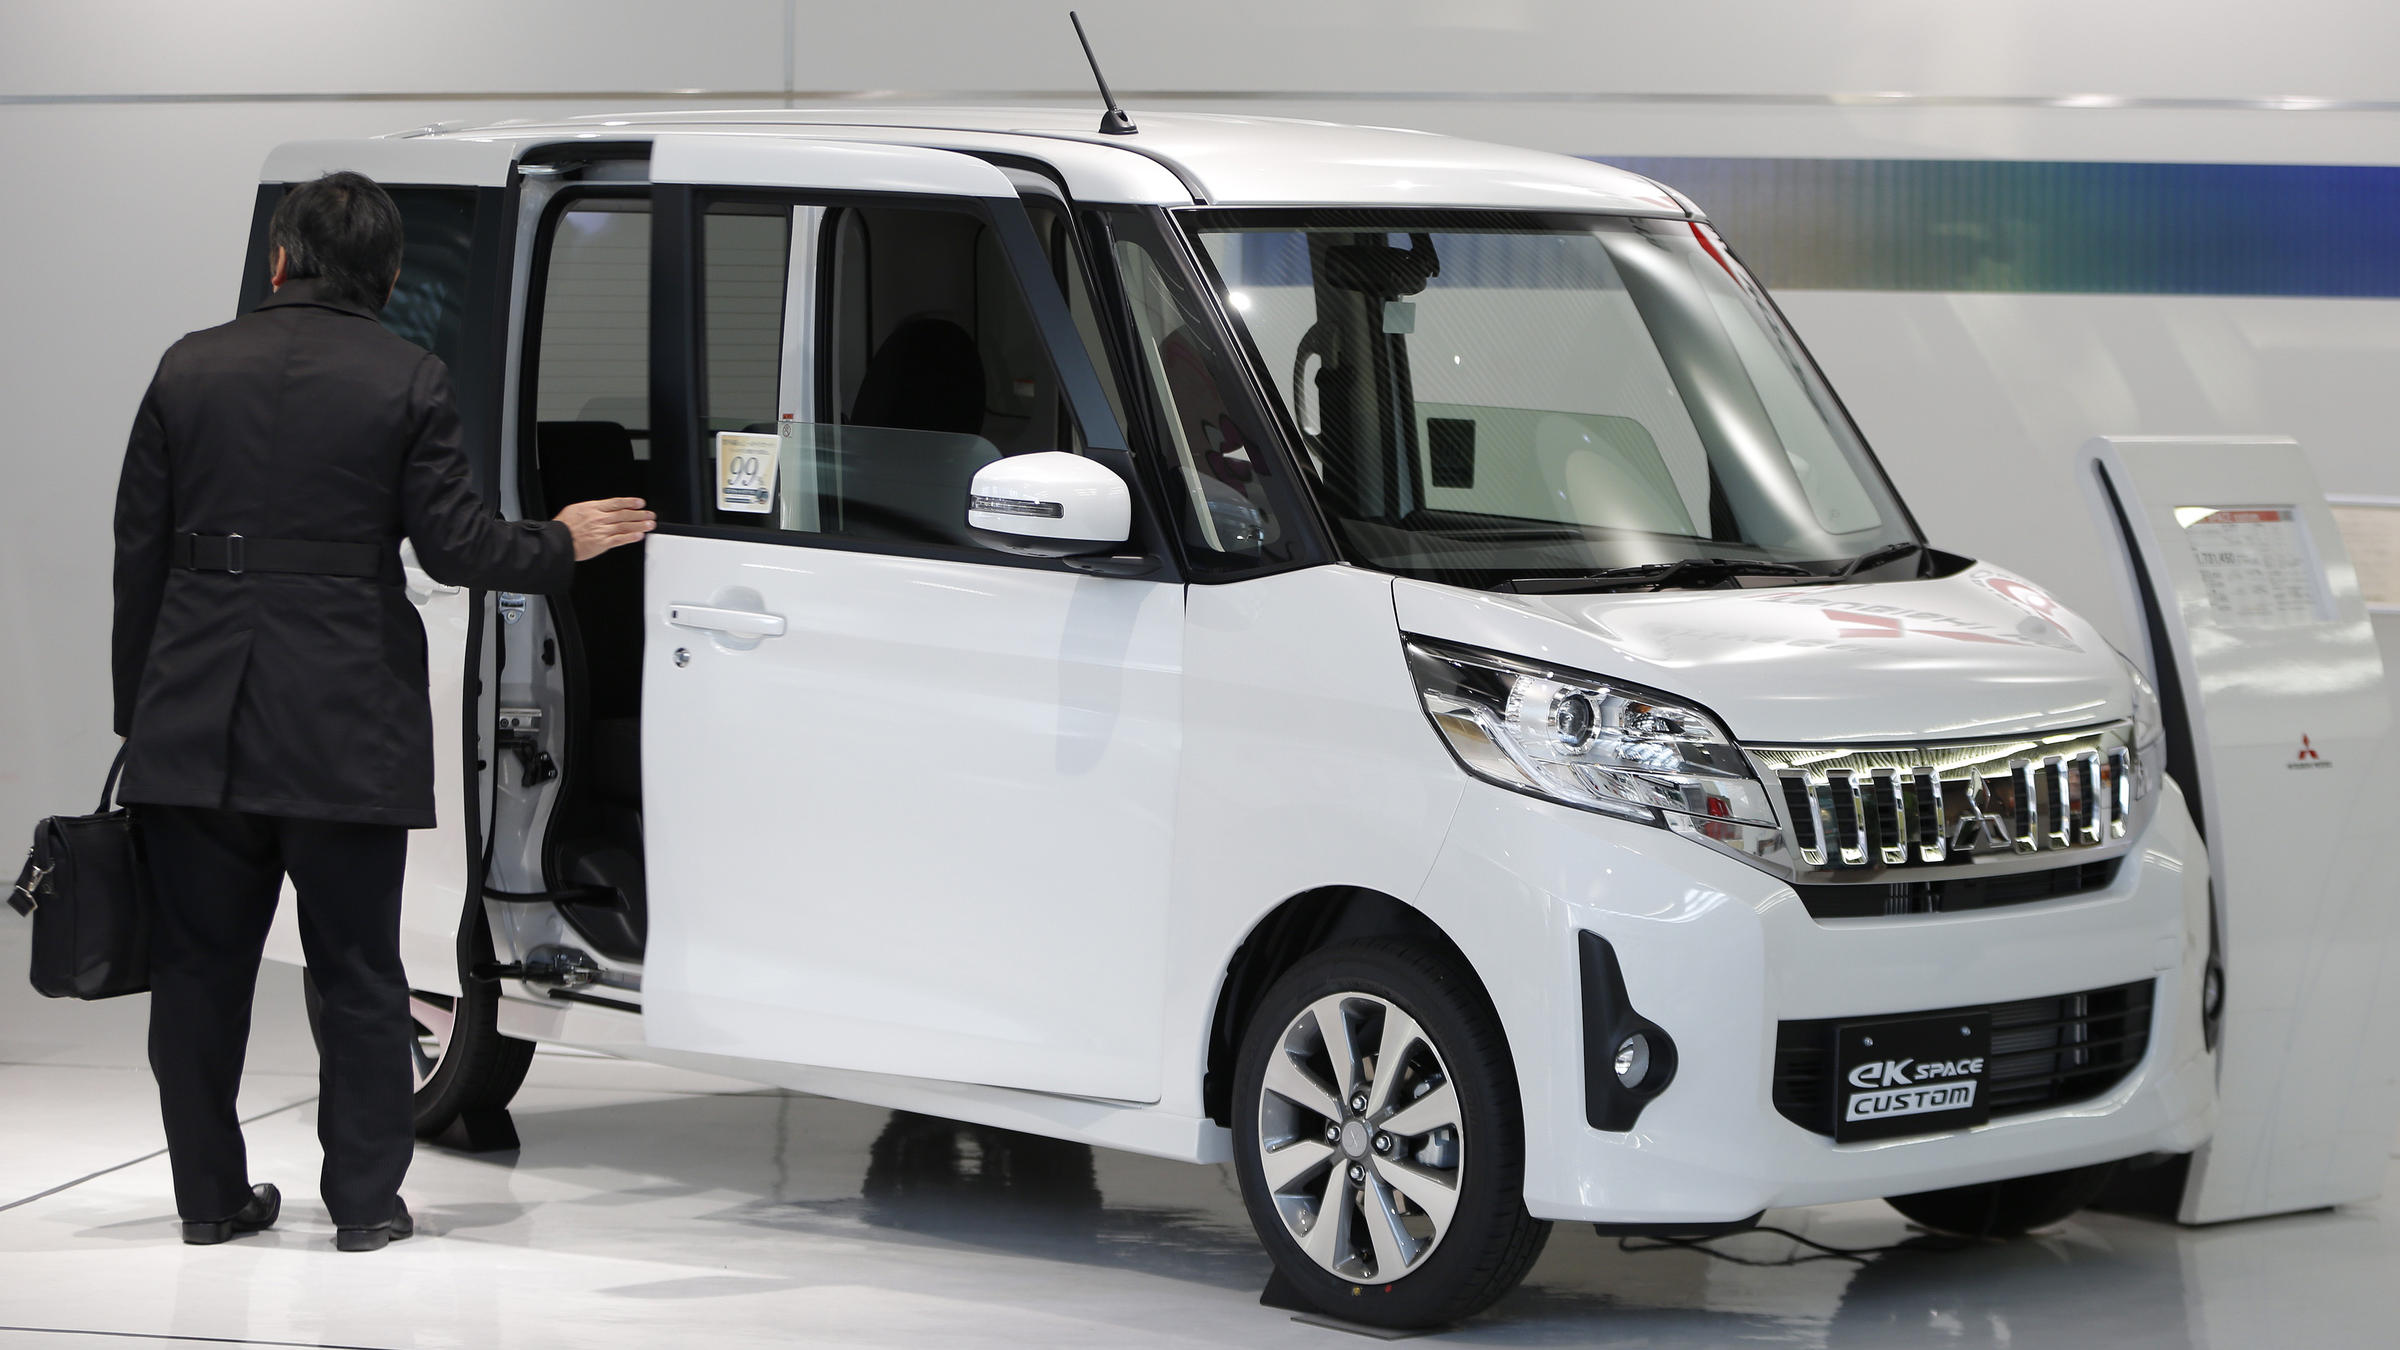 Mitsubishi Says It Tricked Fuel Mileage Tests On Some Cars